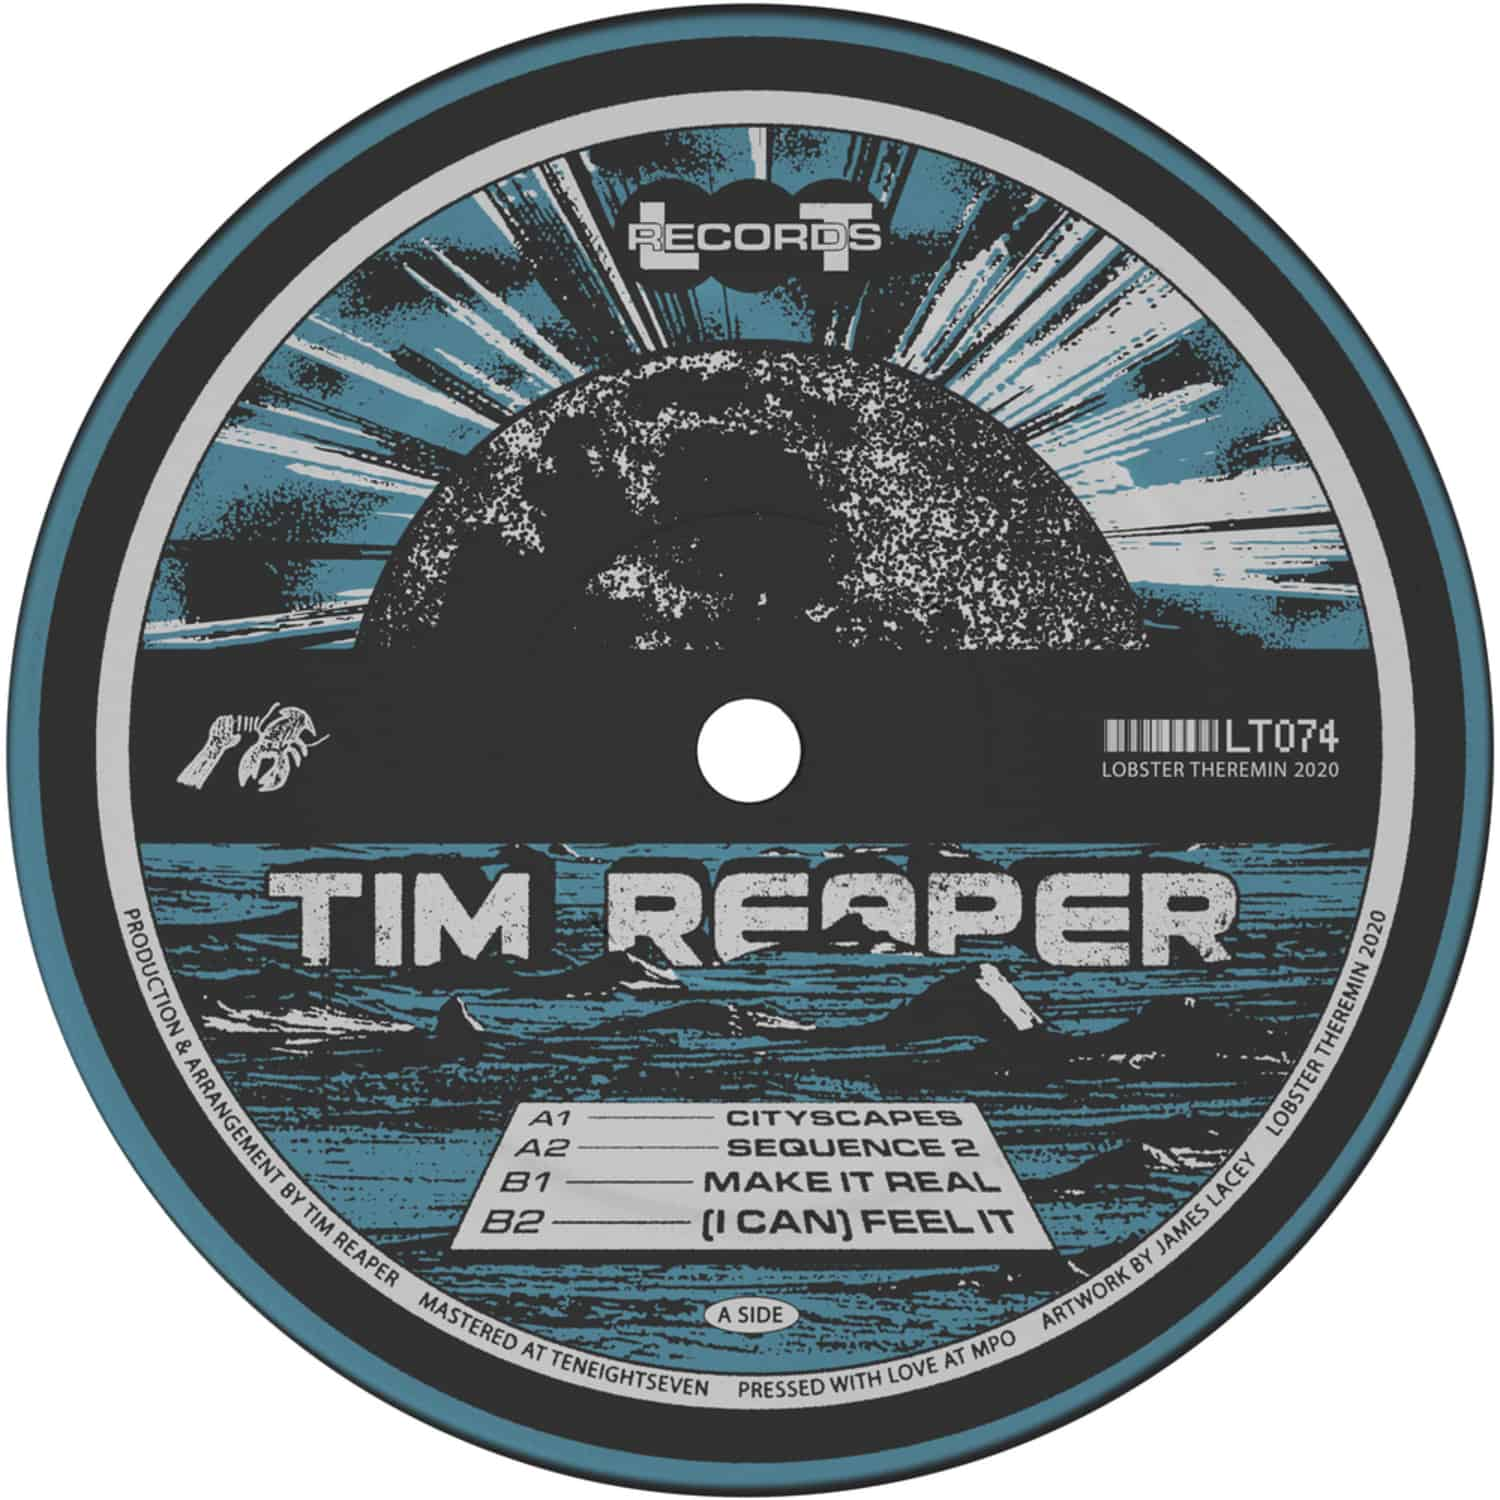 Tim Reaper - CITYSCAPES EP